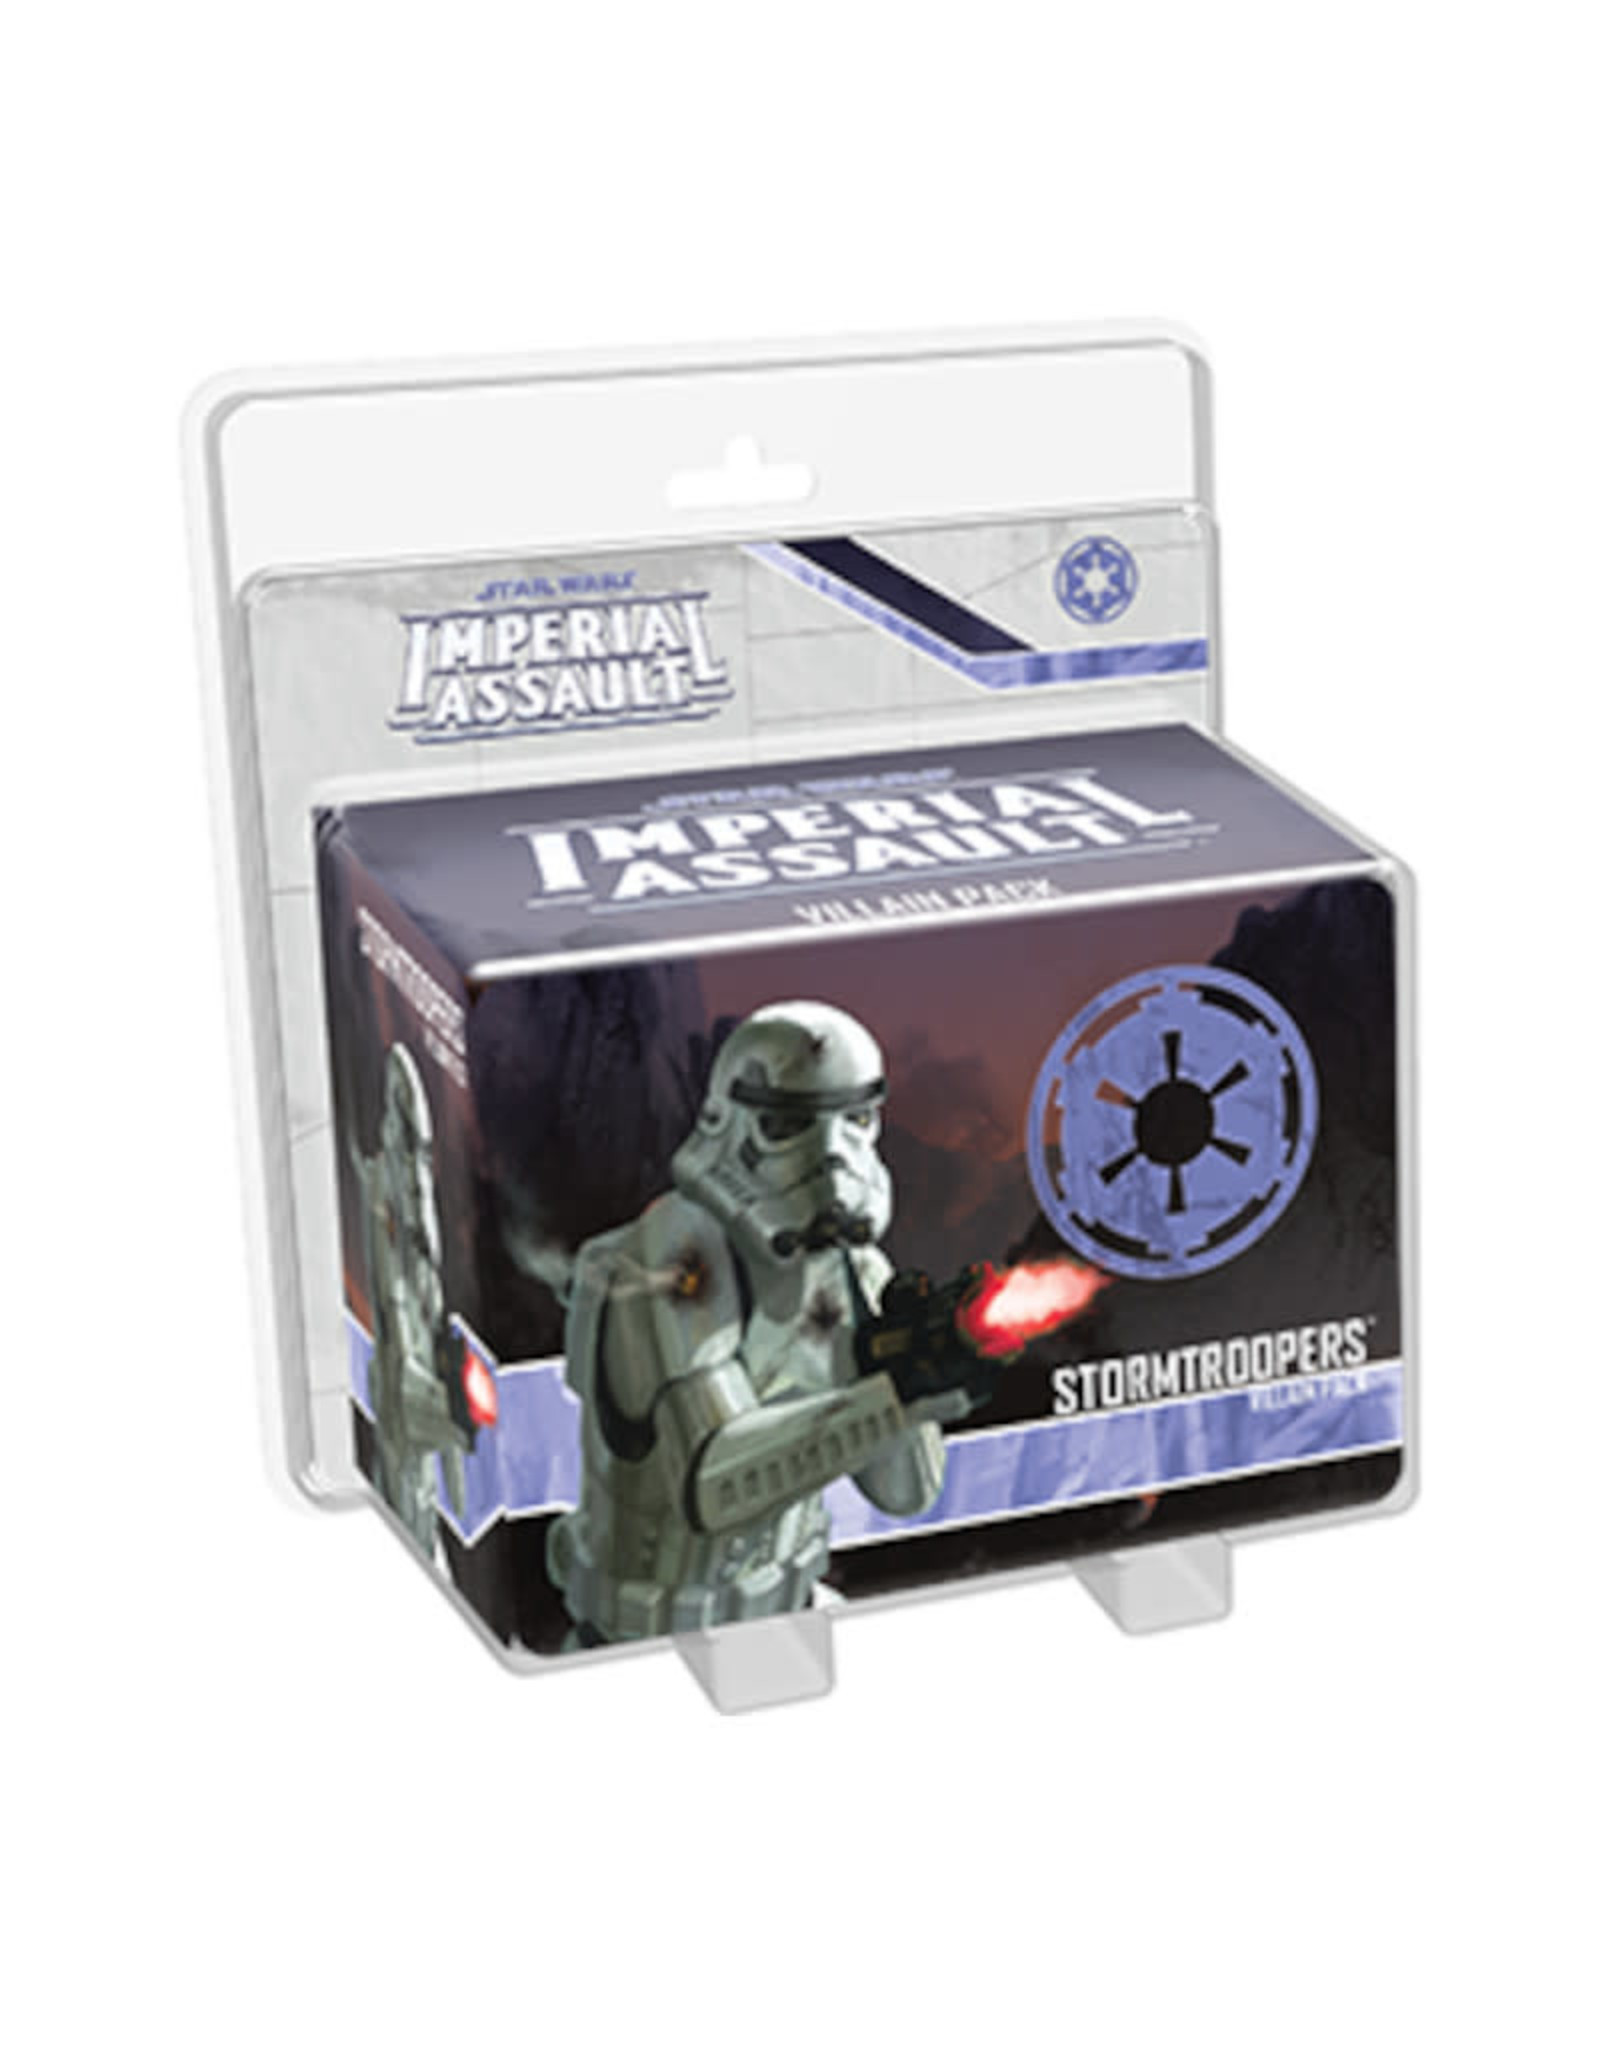 Fantasy Flight Games Star Wars Imperial Assault Stormtroopers